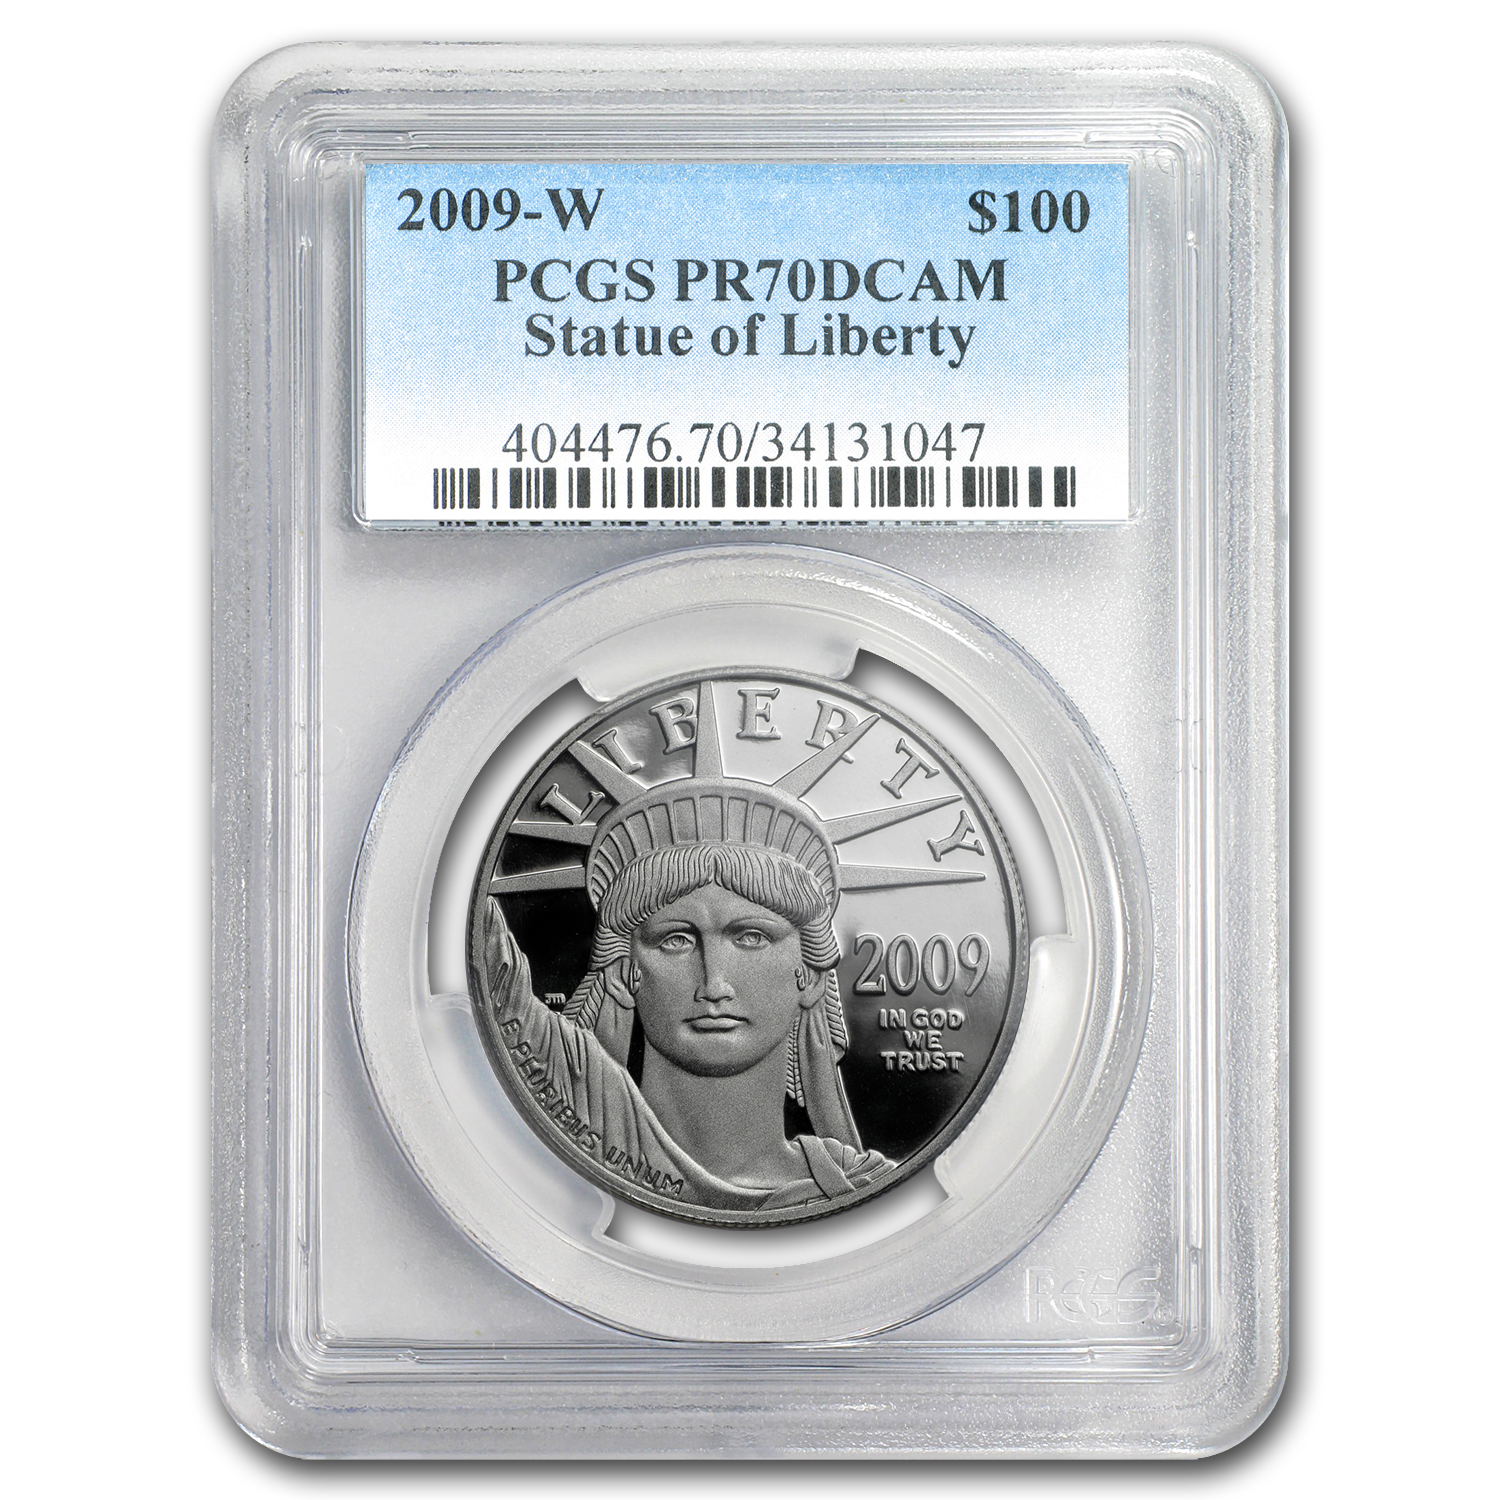 2009-W 1 oz Proof Platinum American Eagle PR-70 PCGS Registry Set